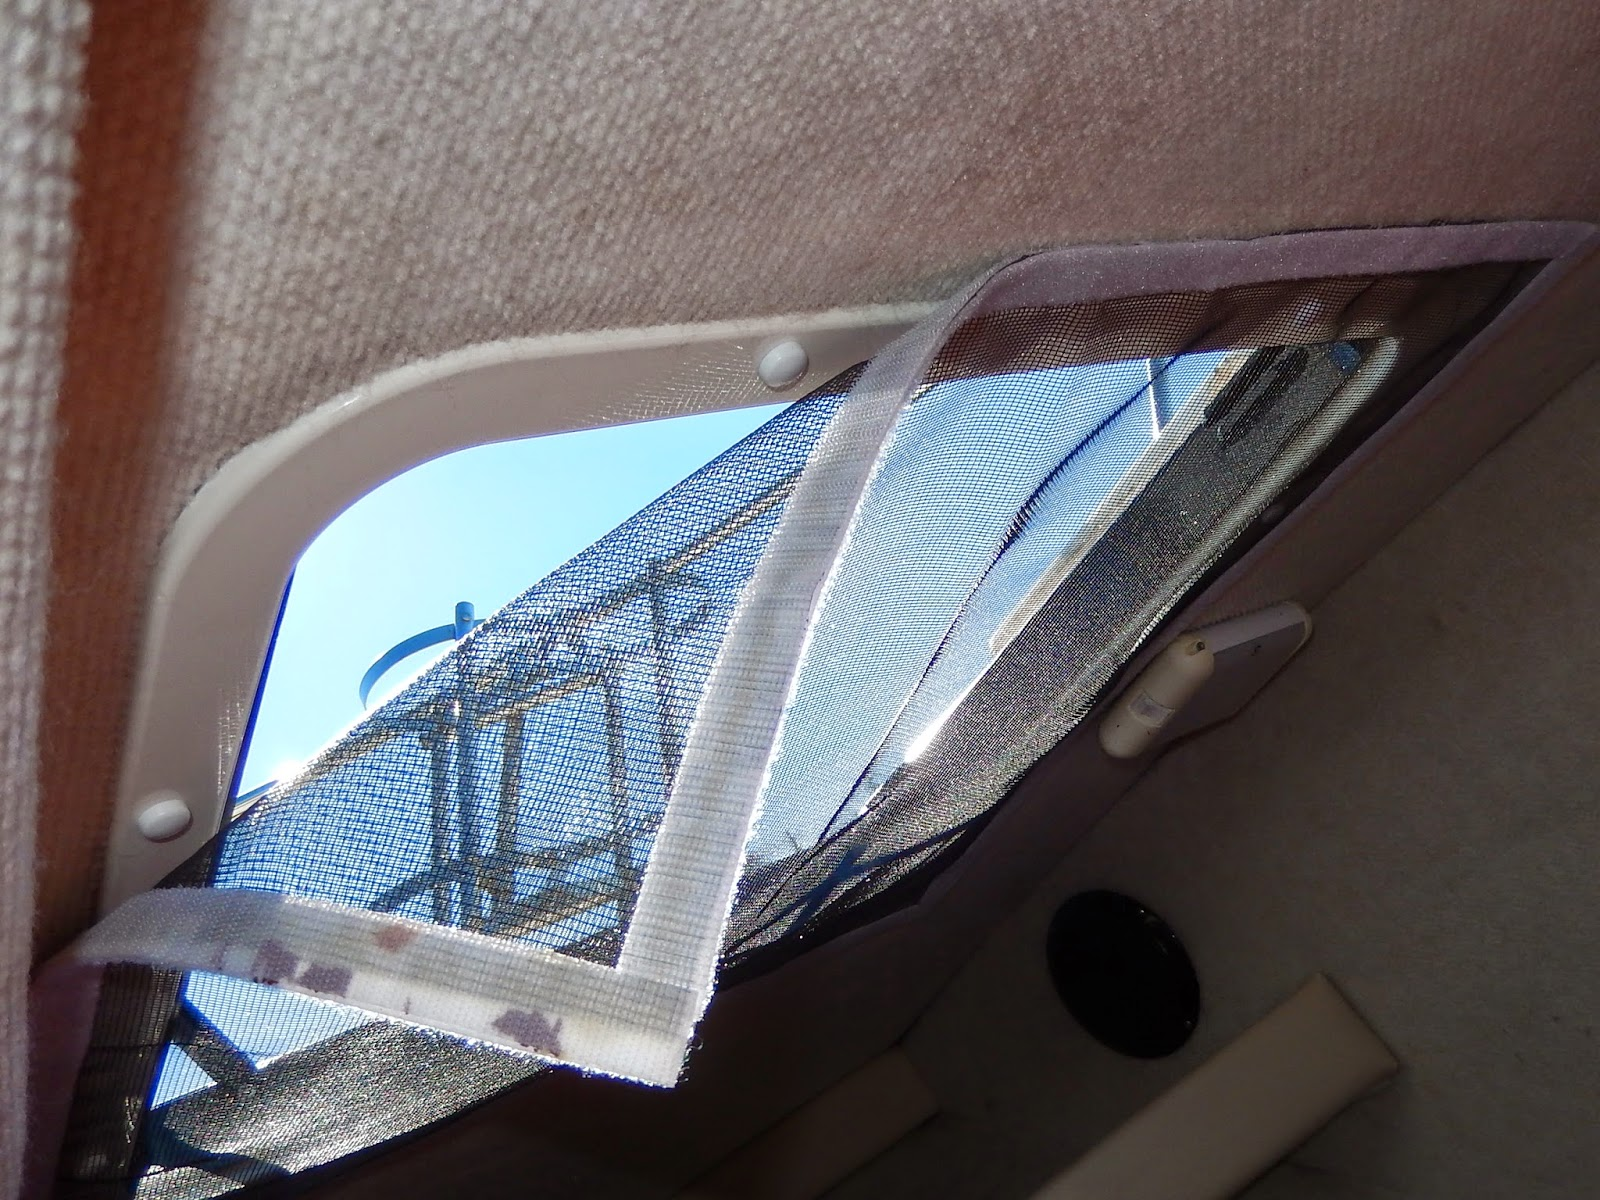 Powell River Books Blog: Boat Hatch Mosquito Screen